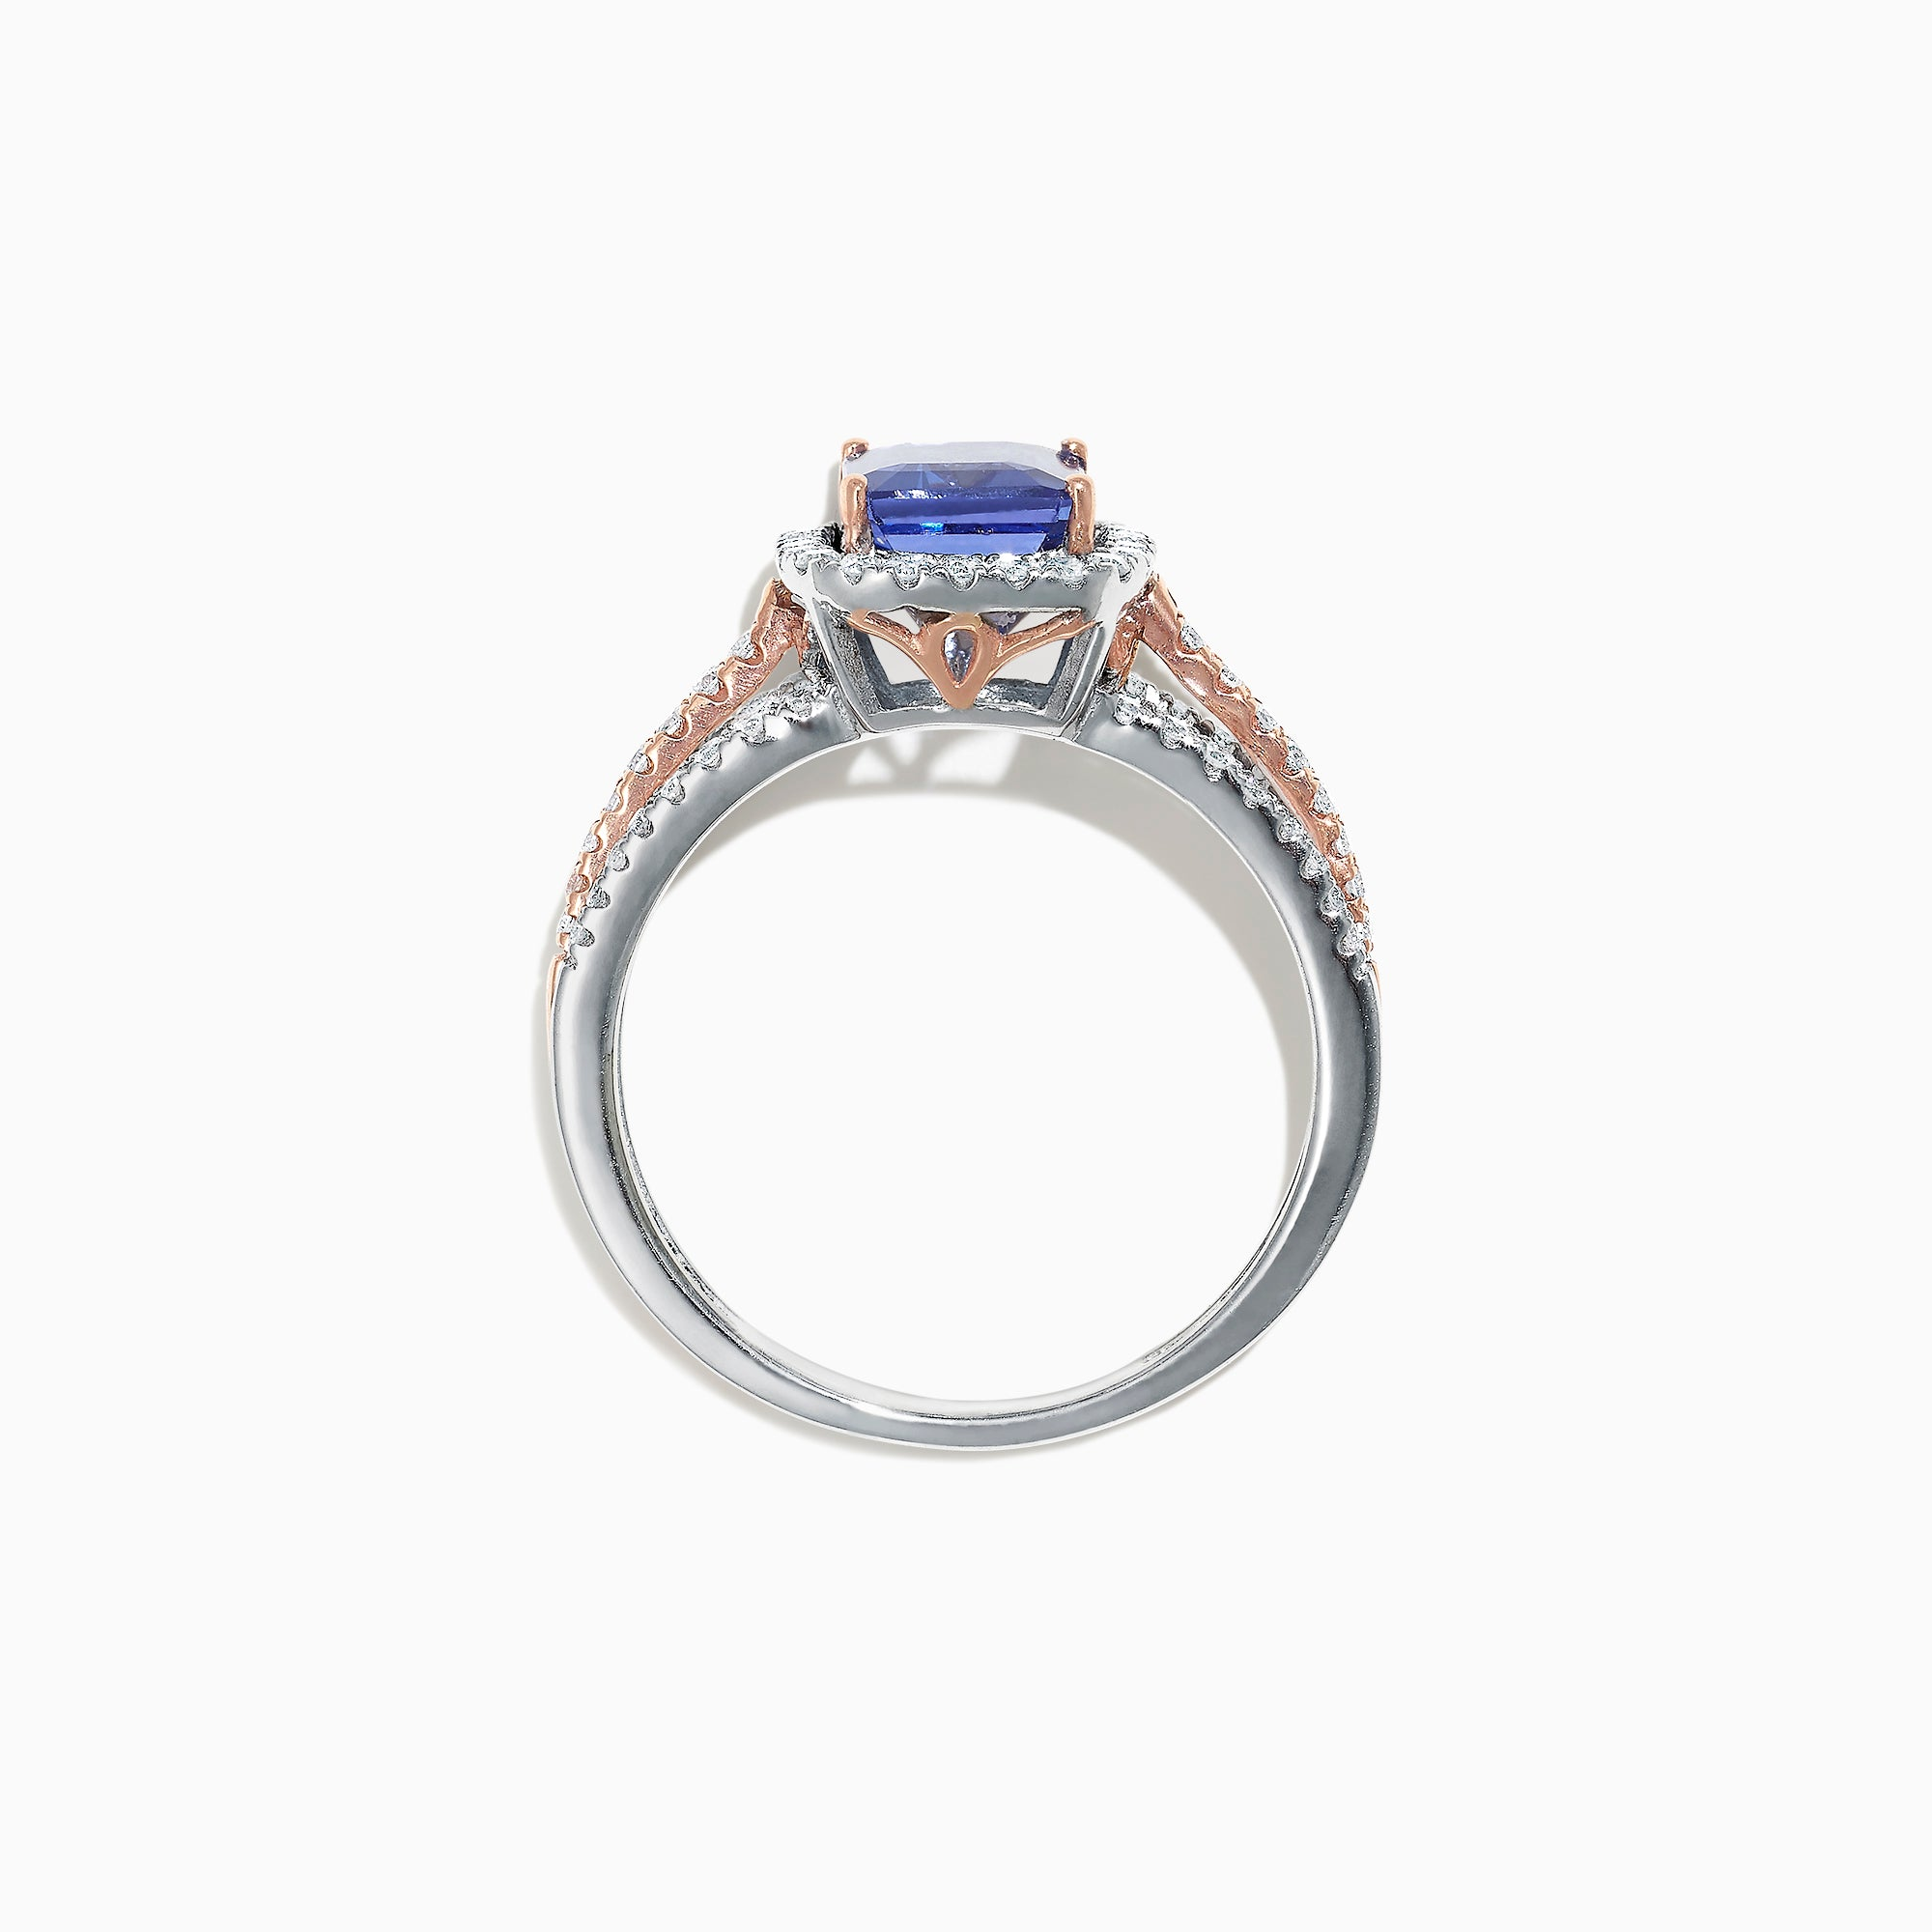 Effy Gemma 14K White and Rose Gold Tanzanite and Diamond Ring, 1.80 TCW